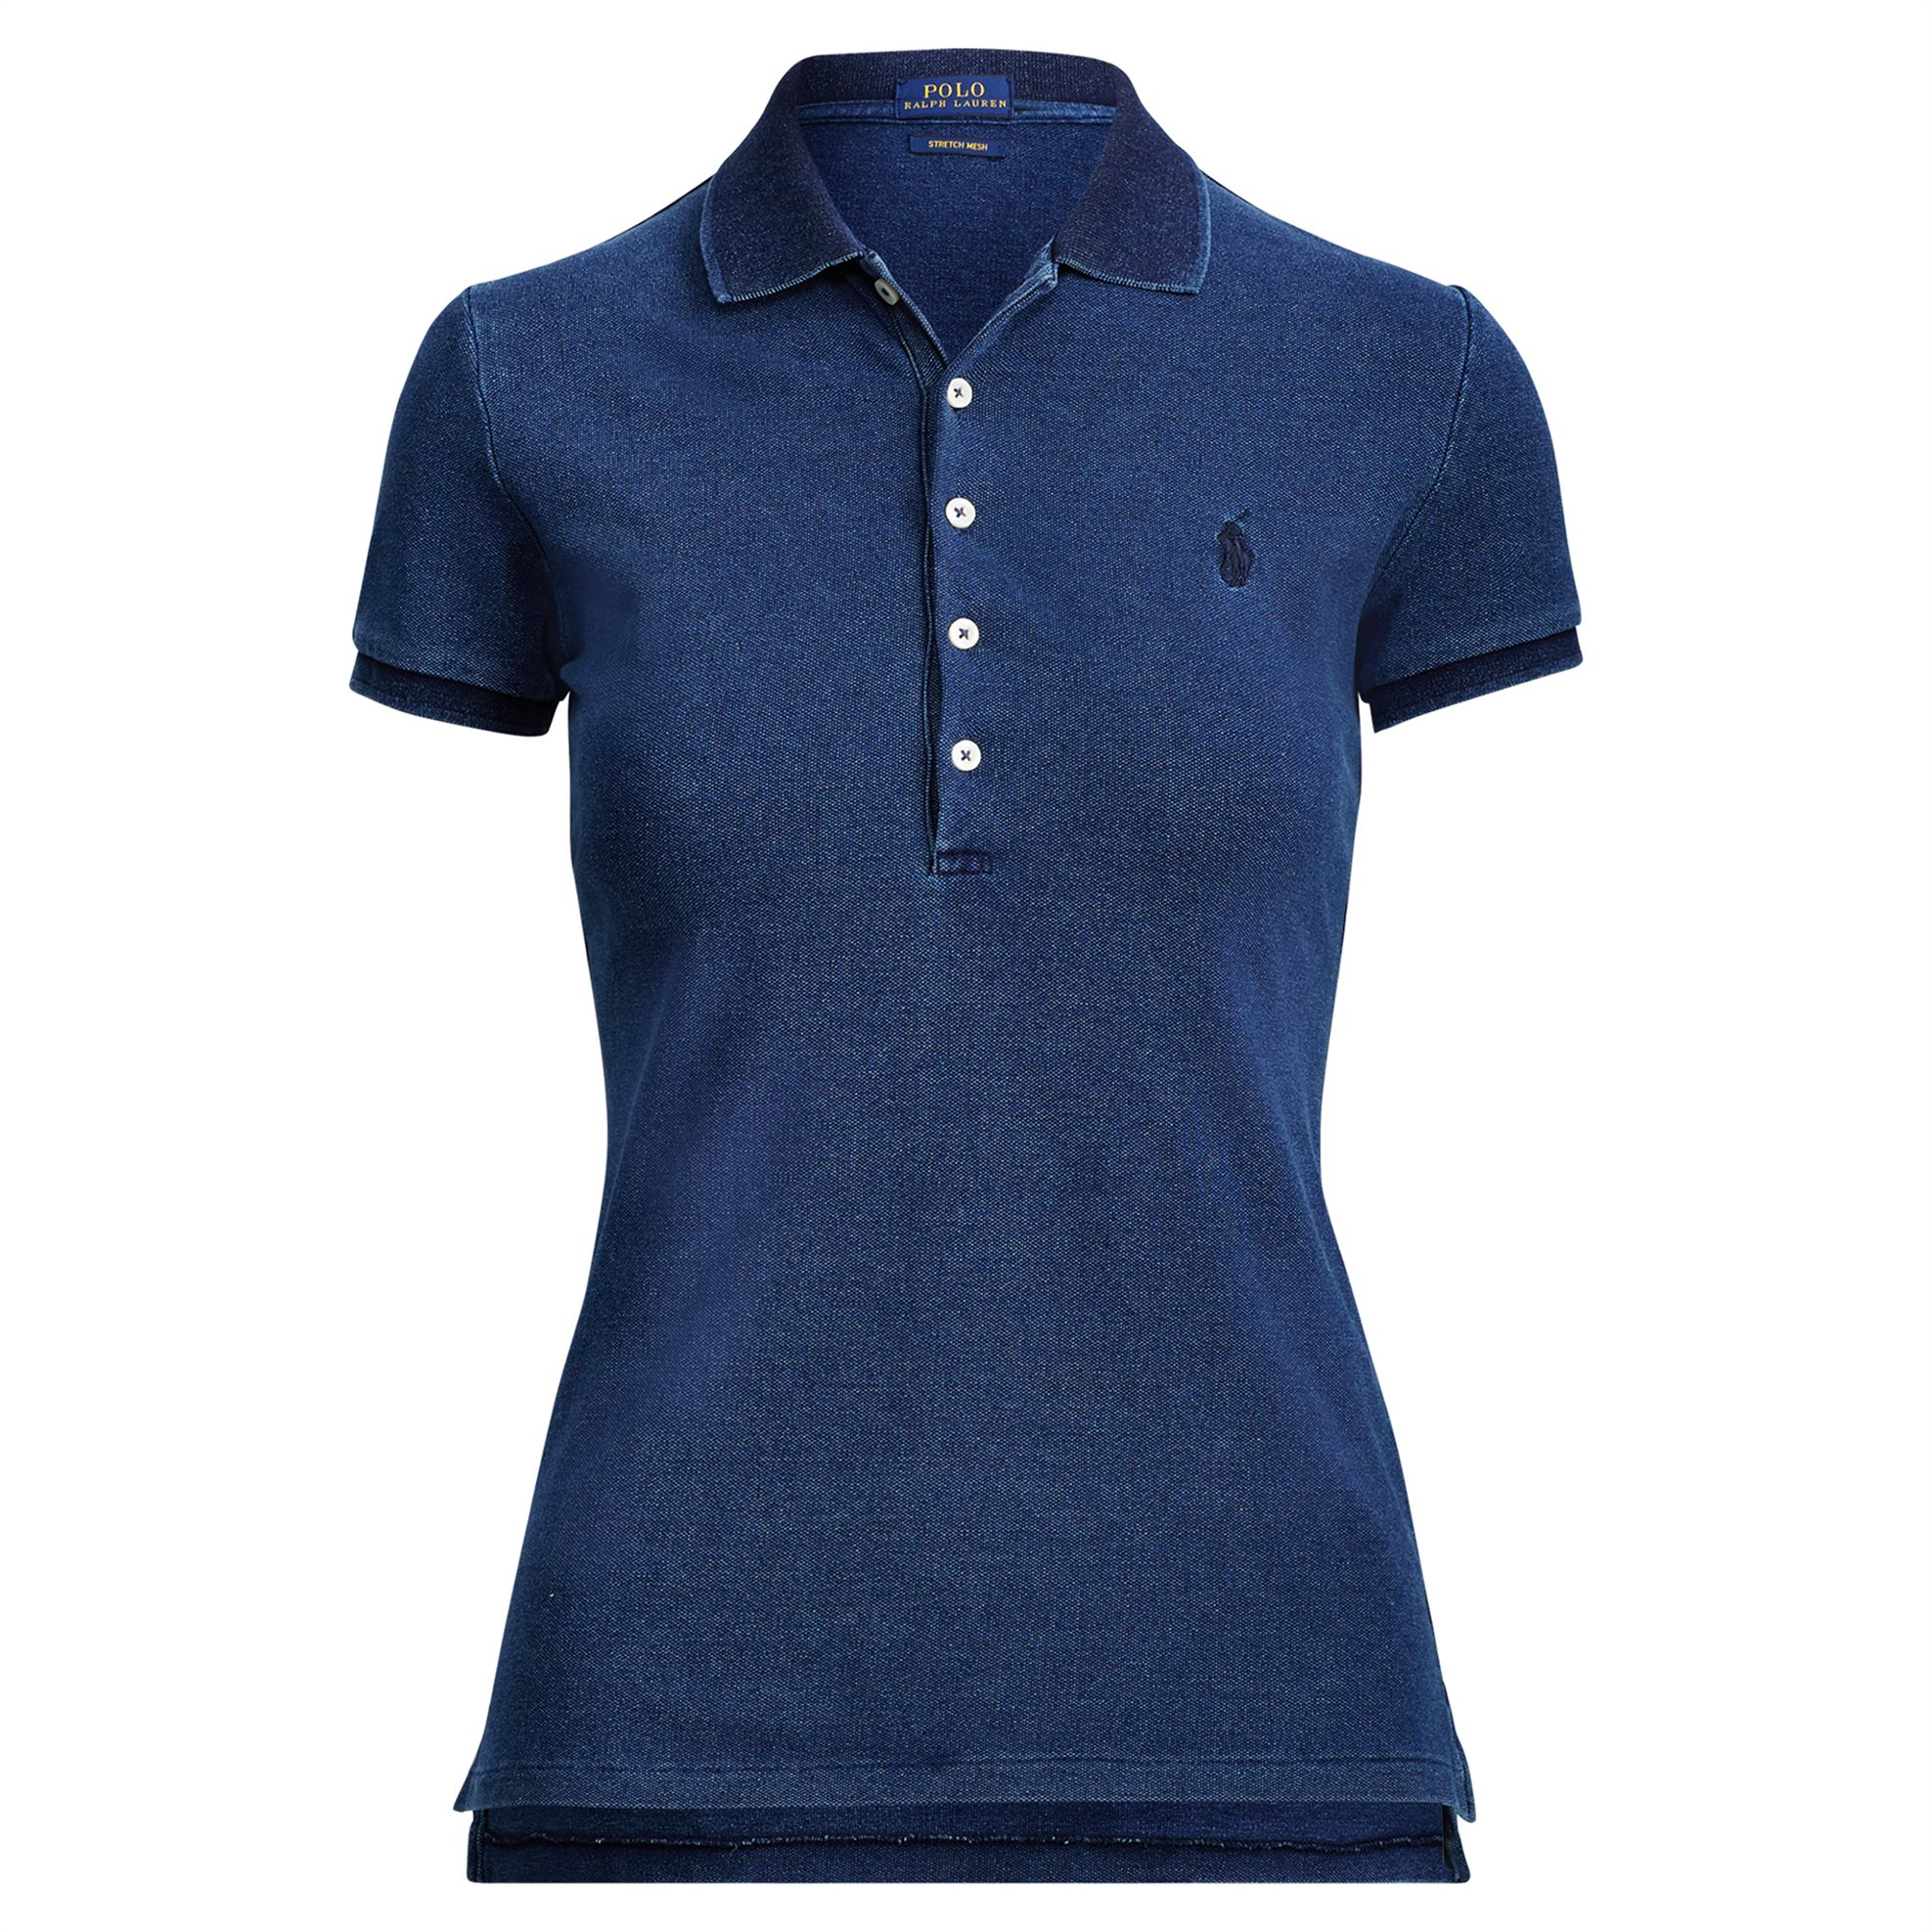 e45cb7c2facd Notos Polo Ralph Lauren γυναικεία μπλούζα Slim Fit Stretch Polo Shirt -  211505654102 - Μπλε Σκούρο